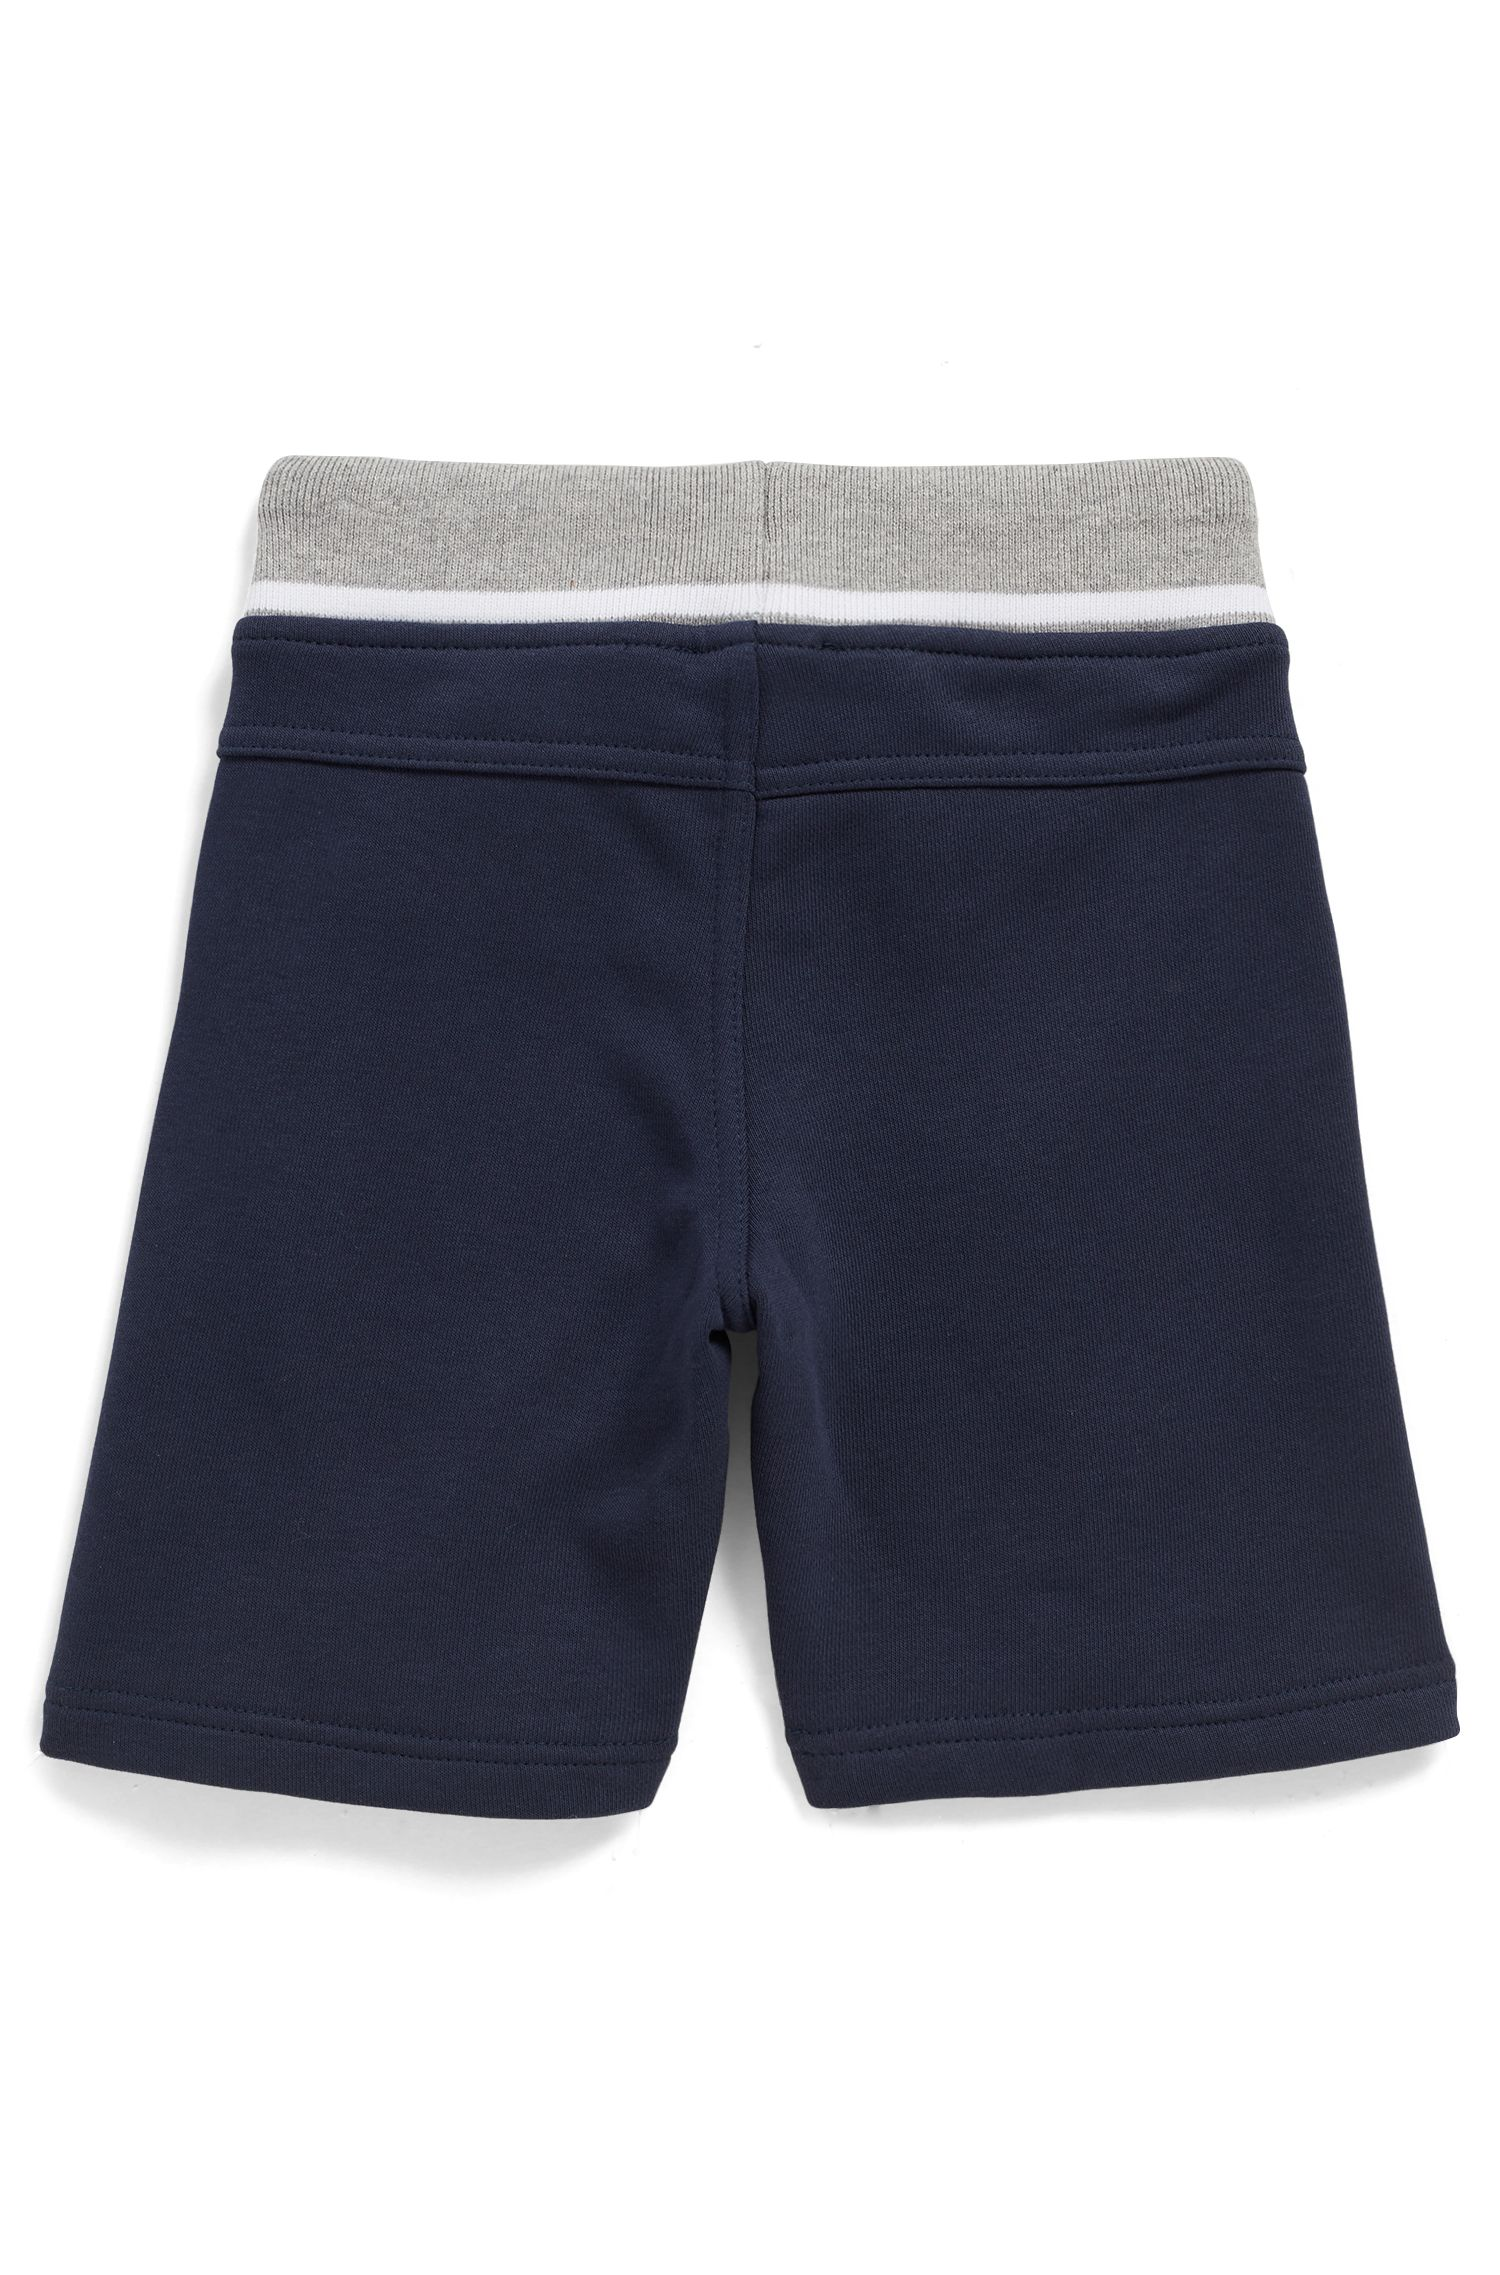 Kids' loungewear shorts in knee-length French terry, Dark Blue